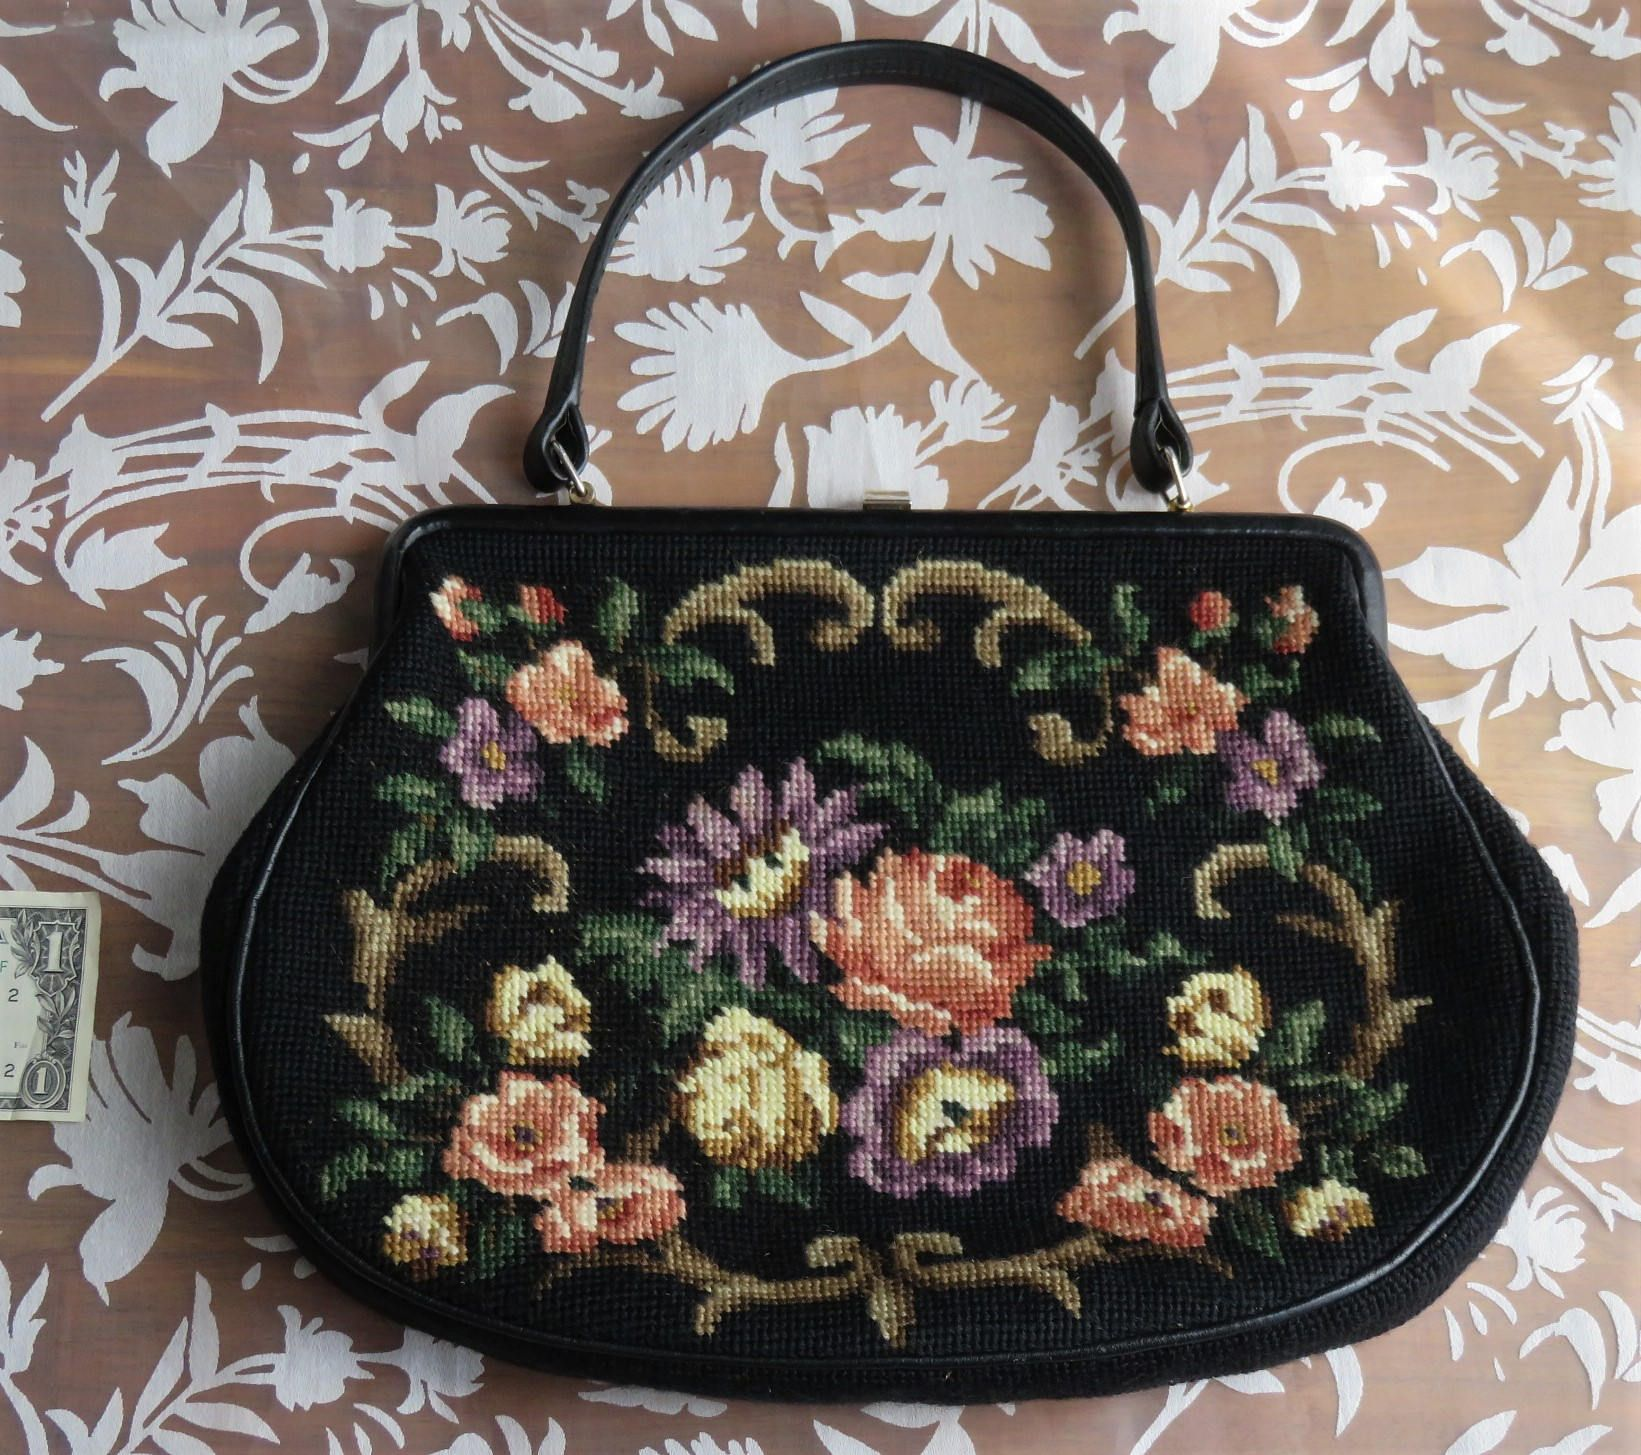 how to clean leather purse lining